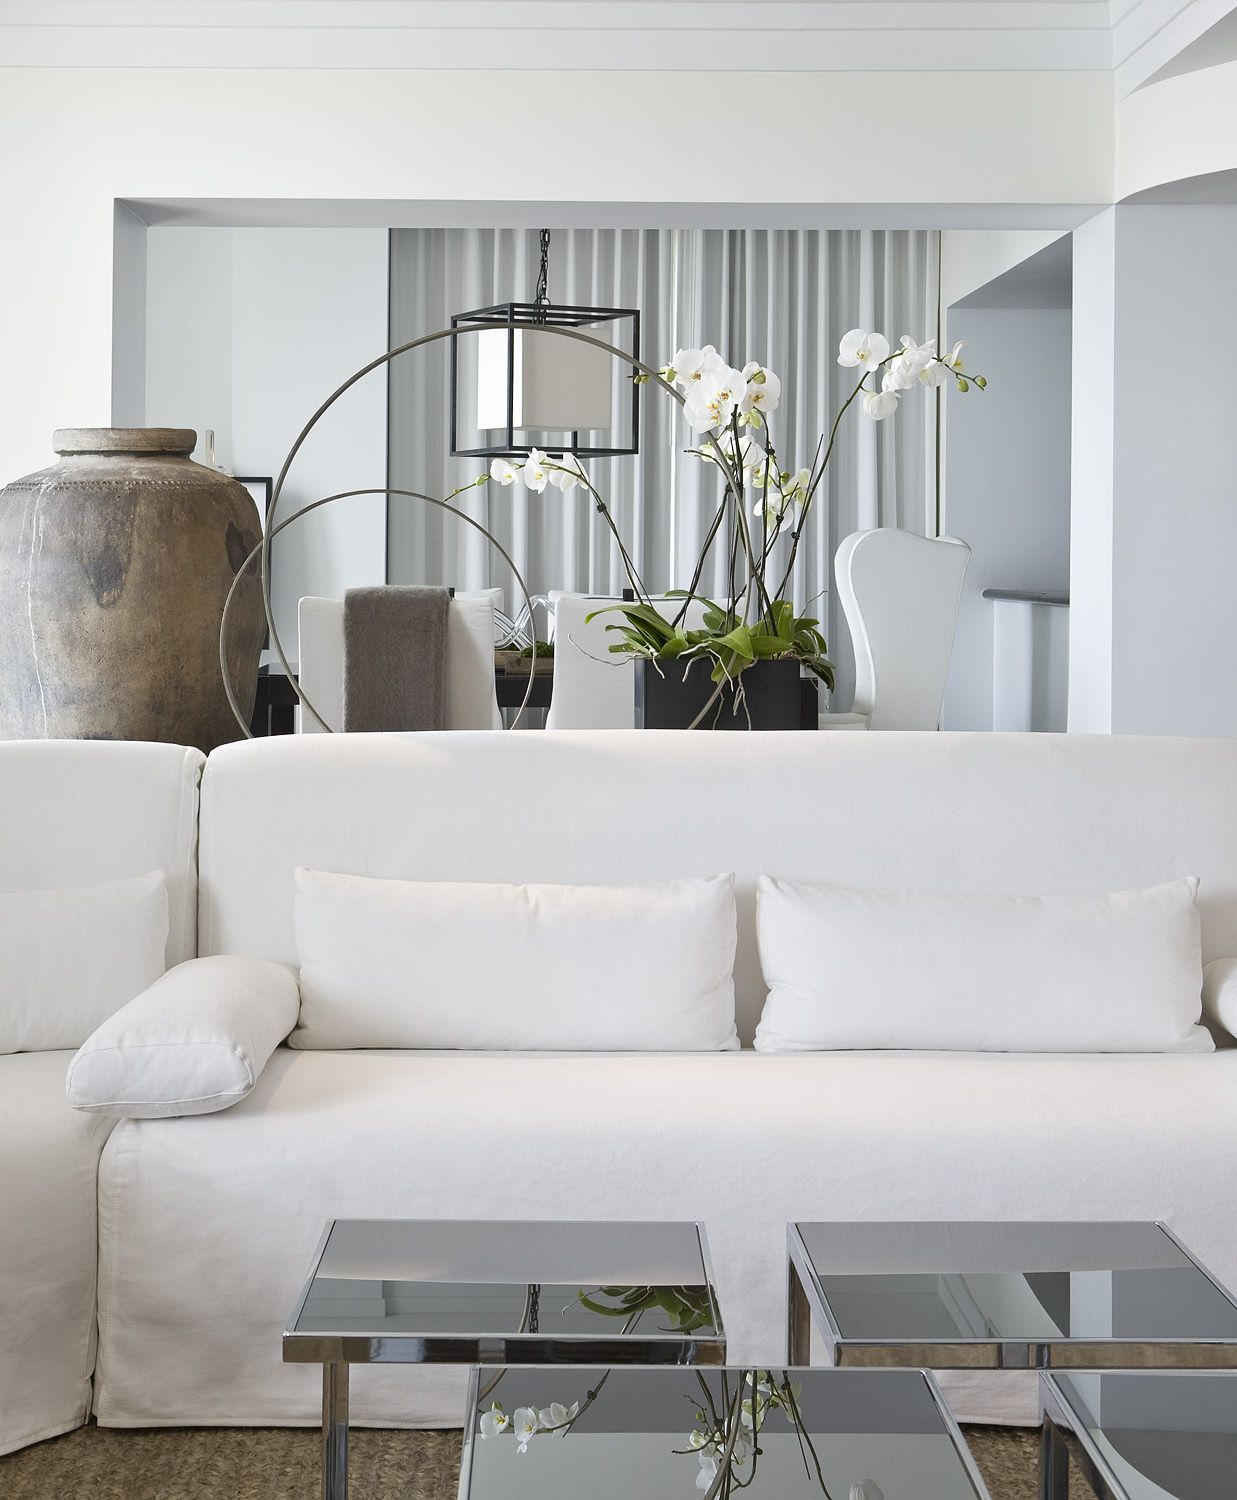 Slipcover Furniture Living Room: White Linen Slipcovered Sectional By Michael Dawkins